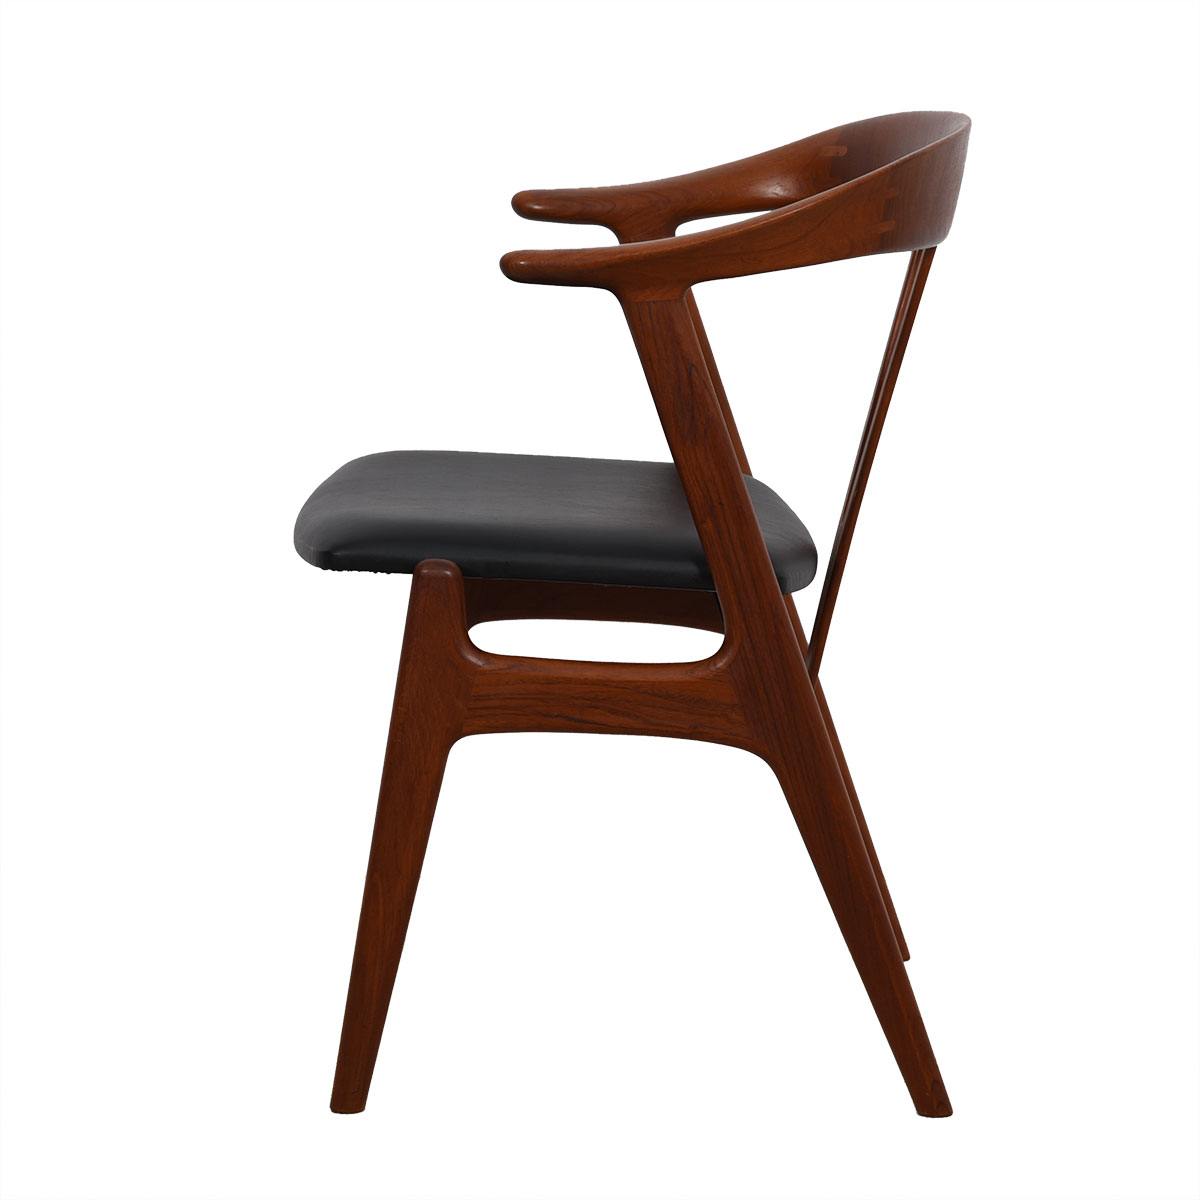 Torbjorn Afdal Rare Set of 6 Teak Dining Chairs